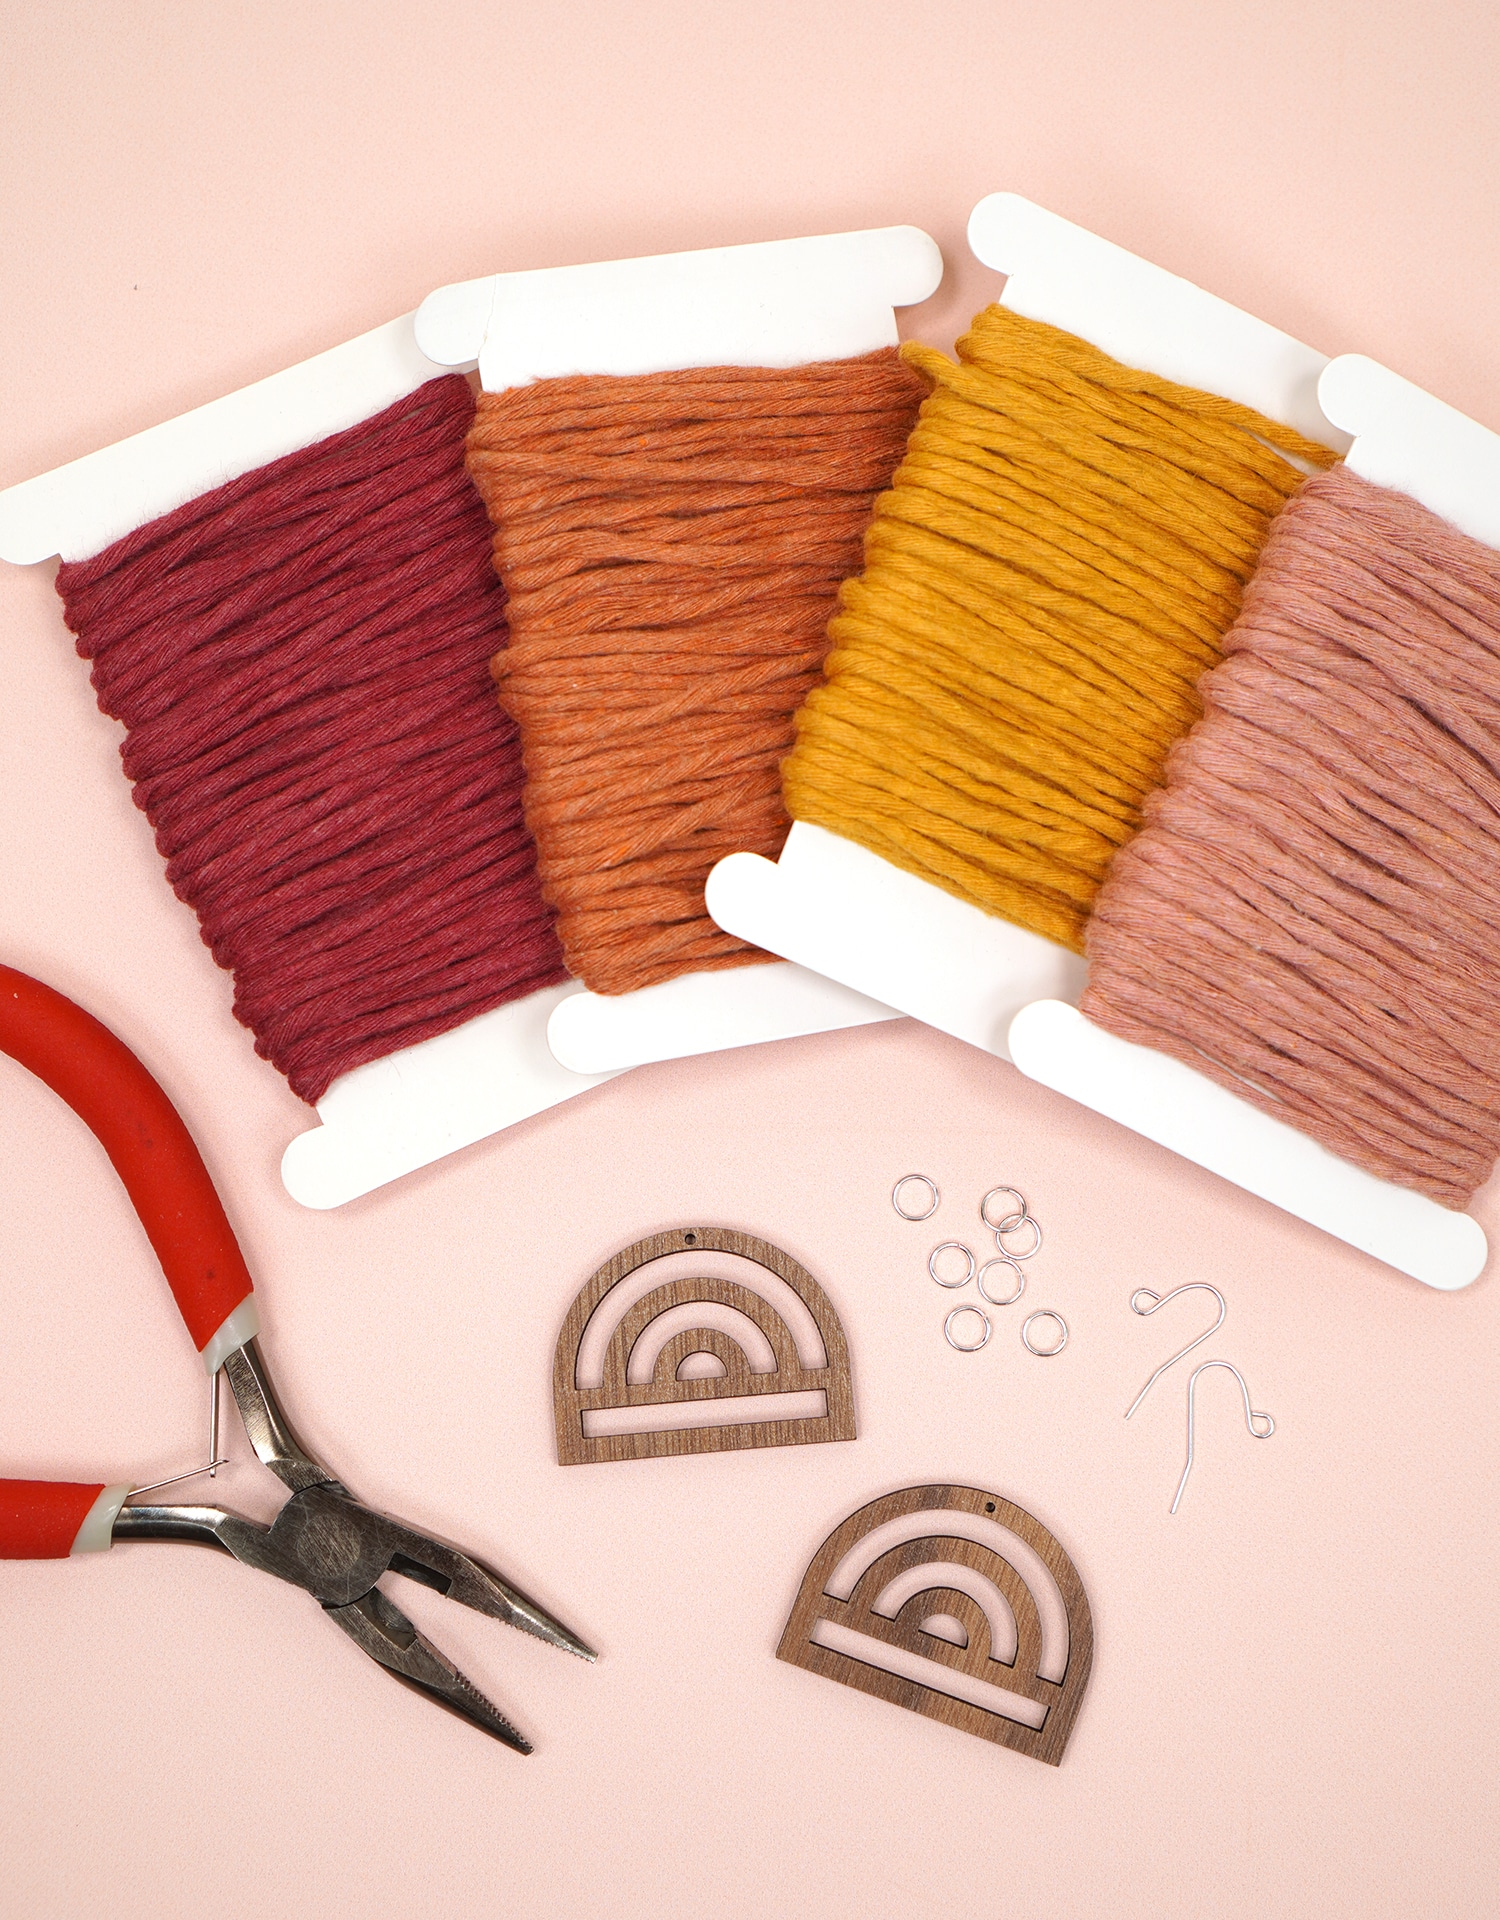 Supplies to Make Macrame Rainbow Earrings on peach background - cord, wooden rainbows, earring findings, and jewelry pliers